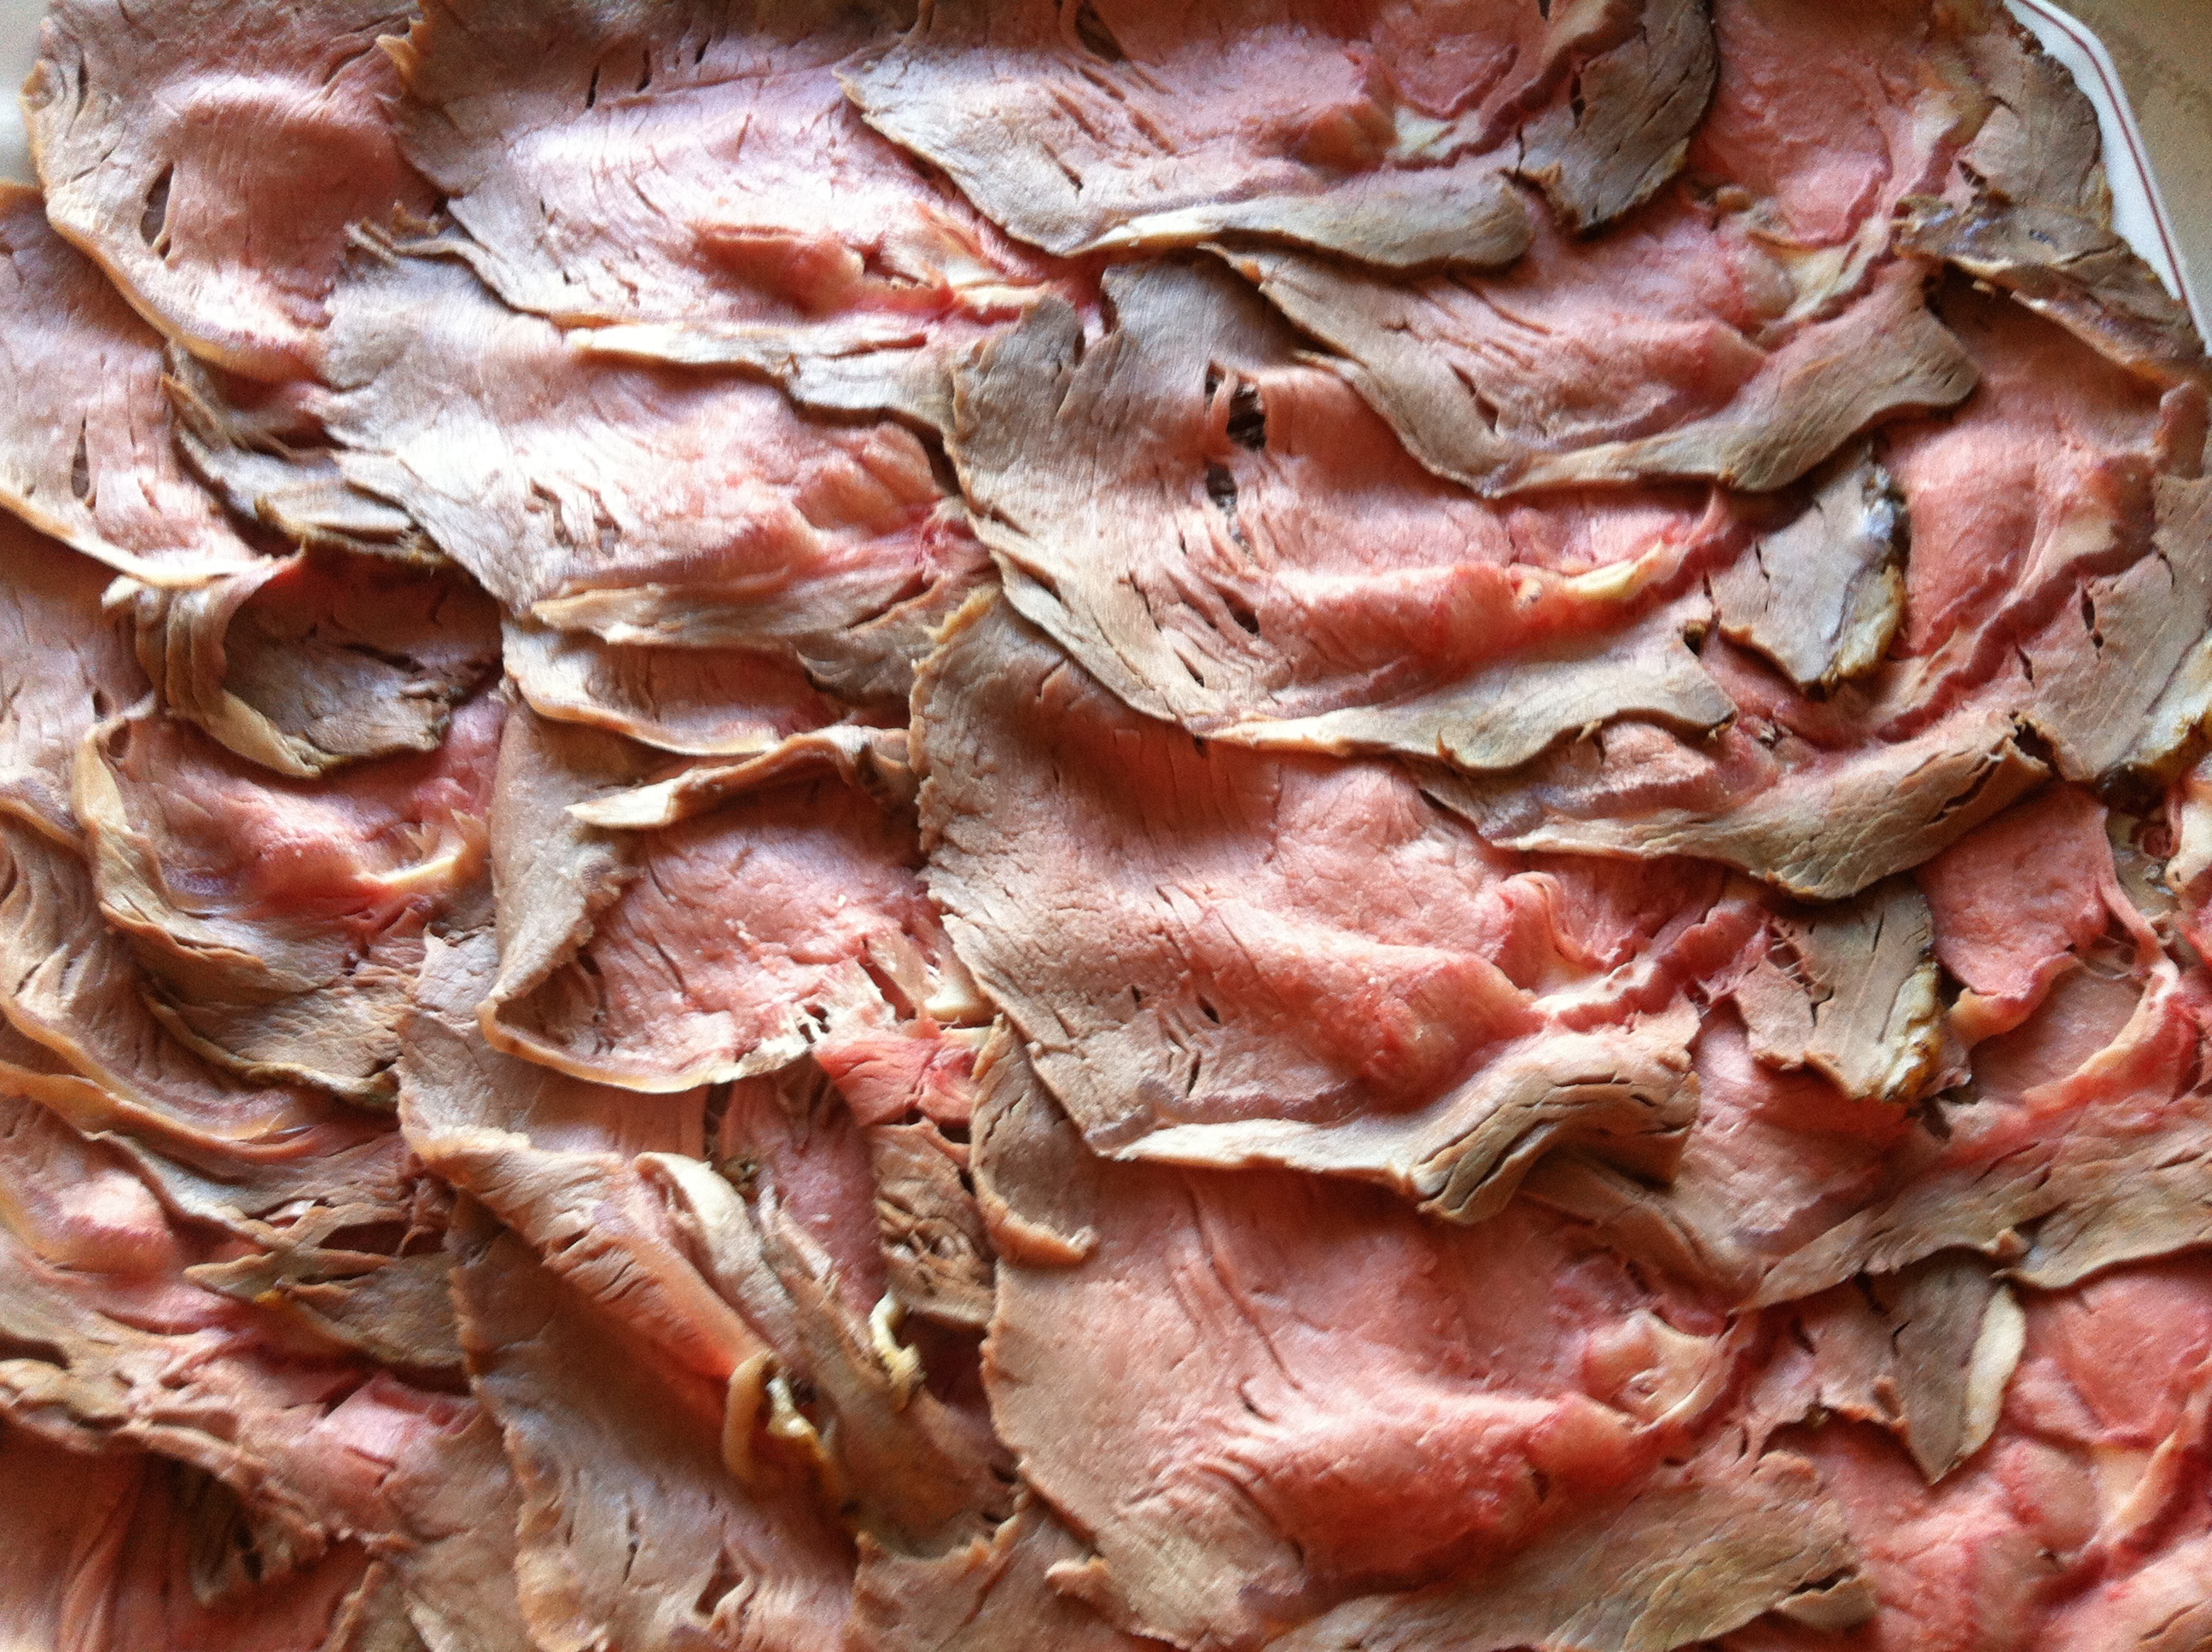 Sliced roast beef package - Rare Roast Beef Cooked And Sliced At The Pantry Is Often The Star Of Our